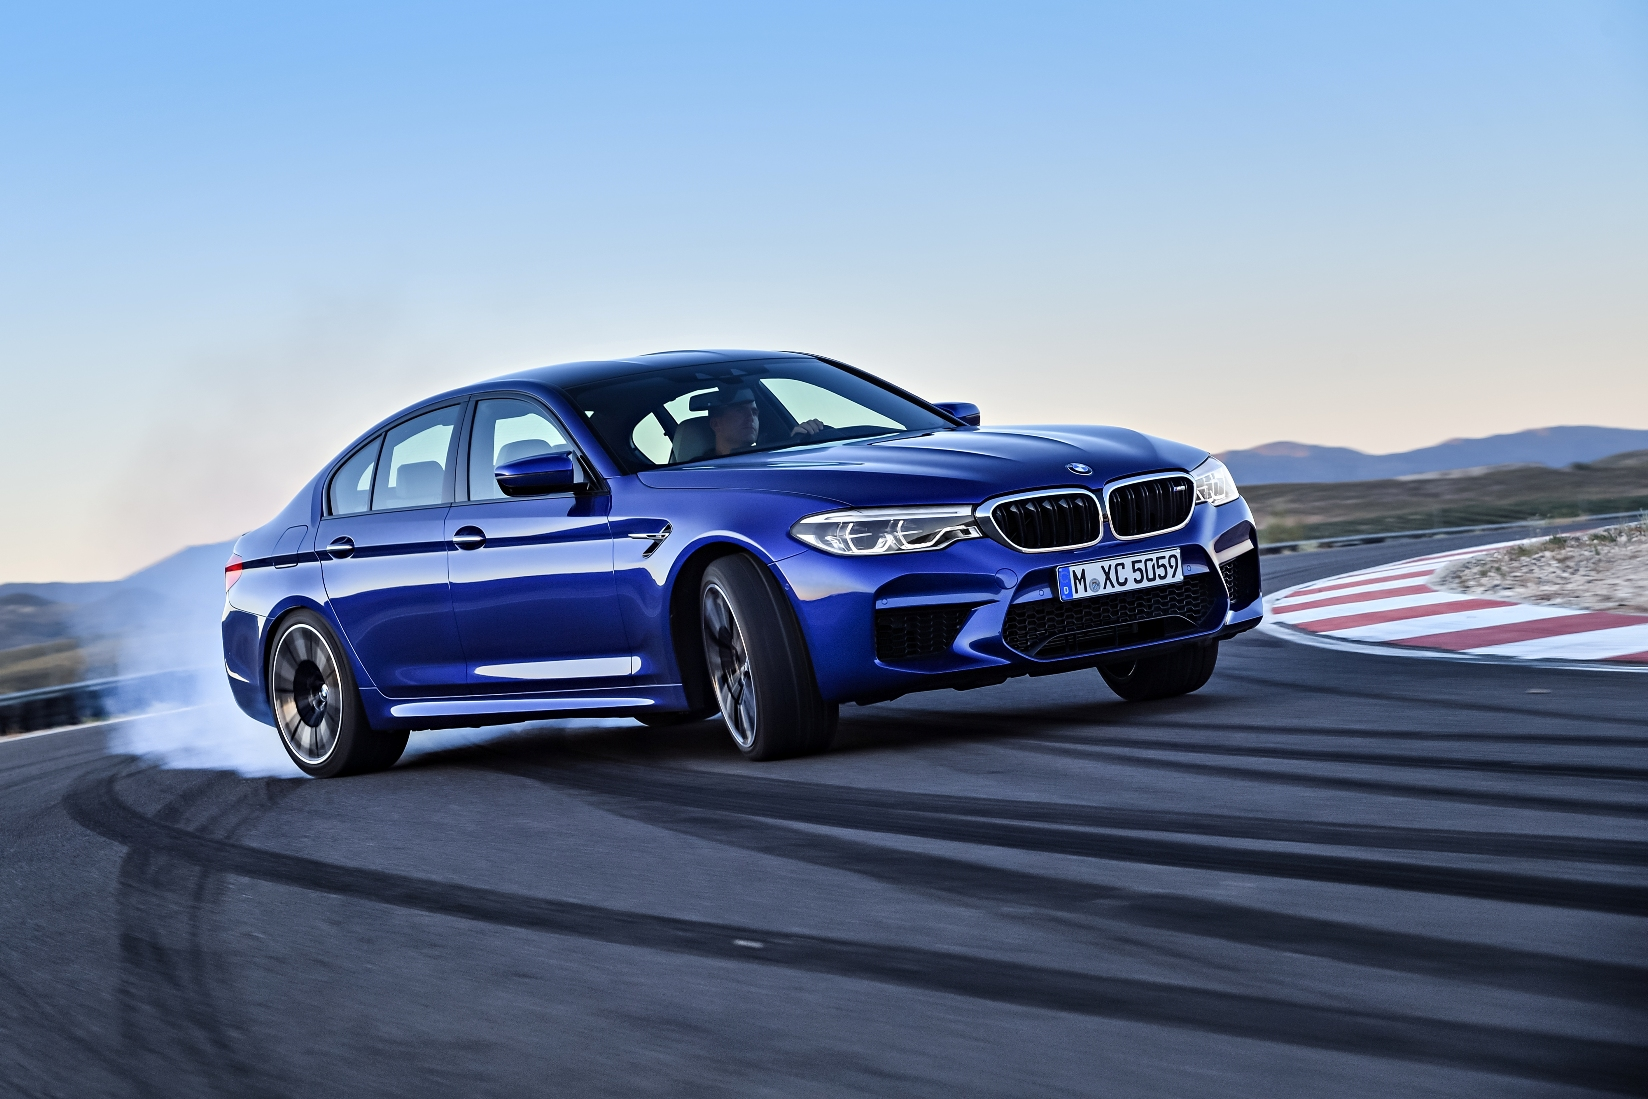 2018 Bmw M5 Packs 600 Hp And M Xdrive Awd System